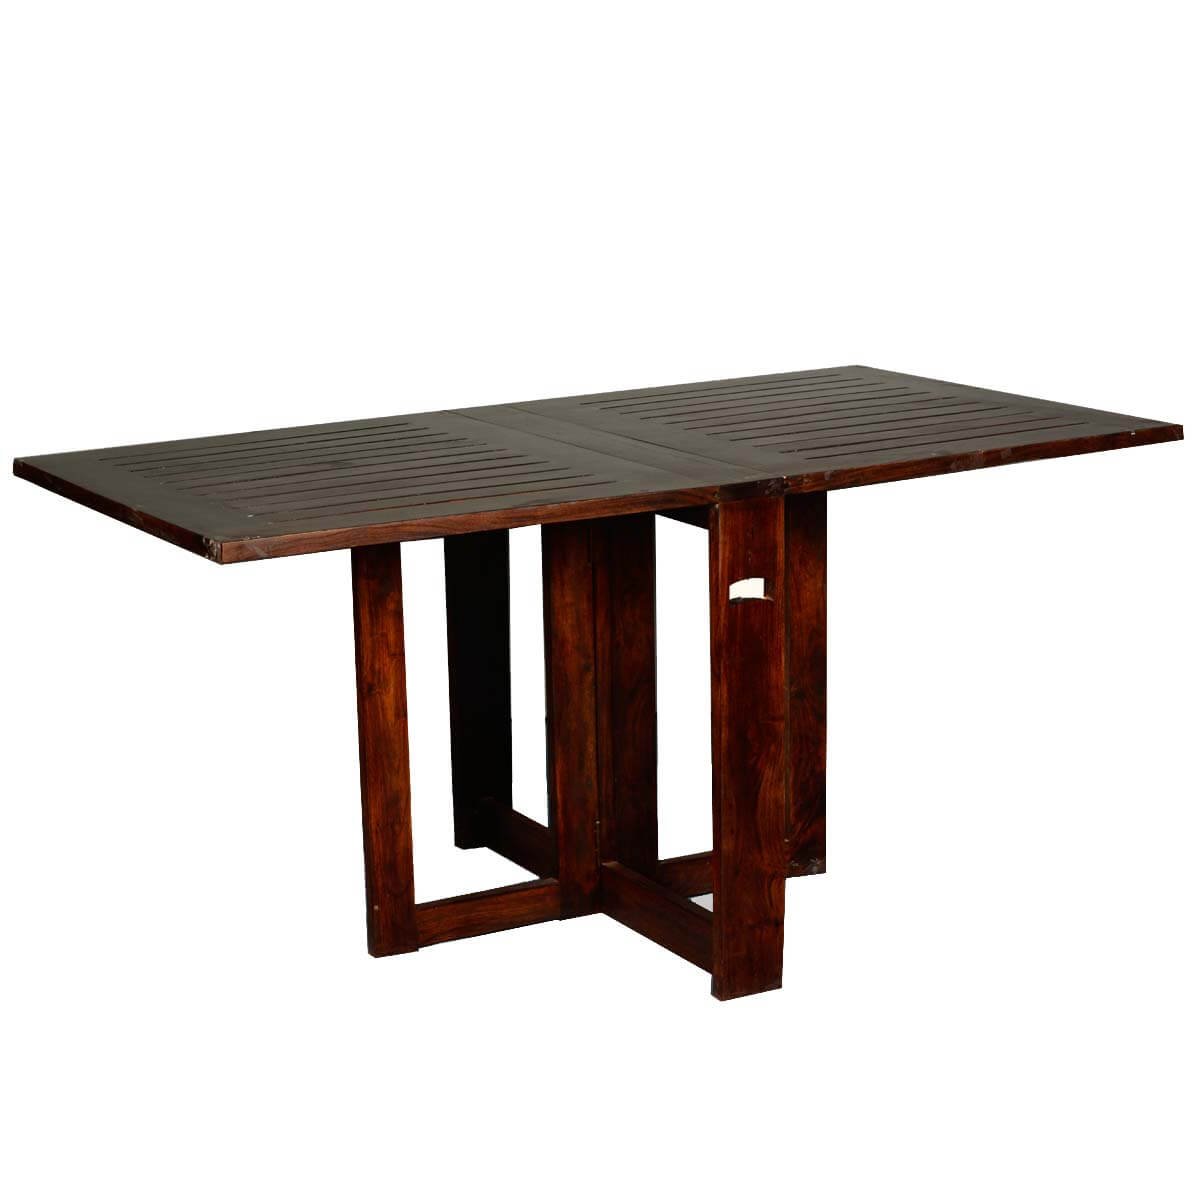 Incredible Solid Wood 4-Square Pedestal Folding Dining